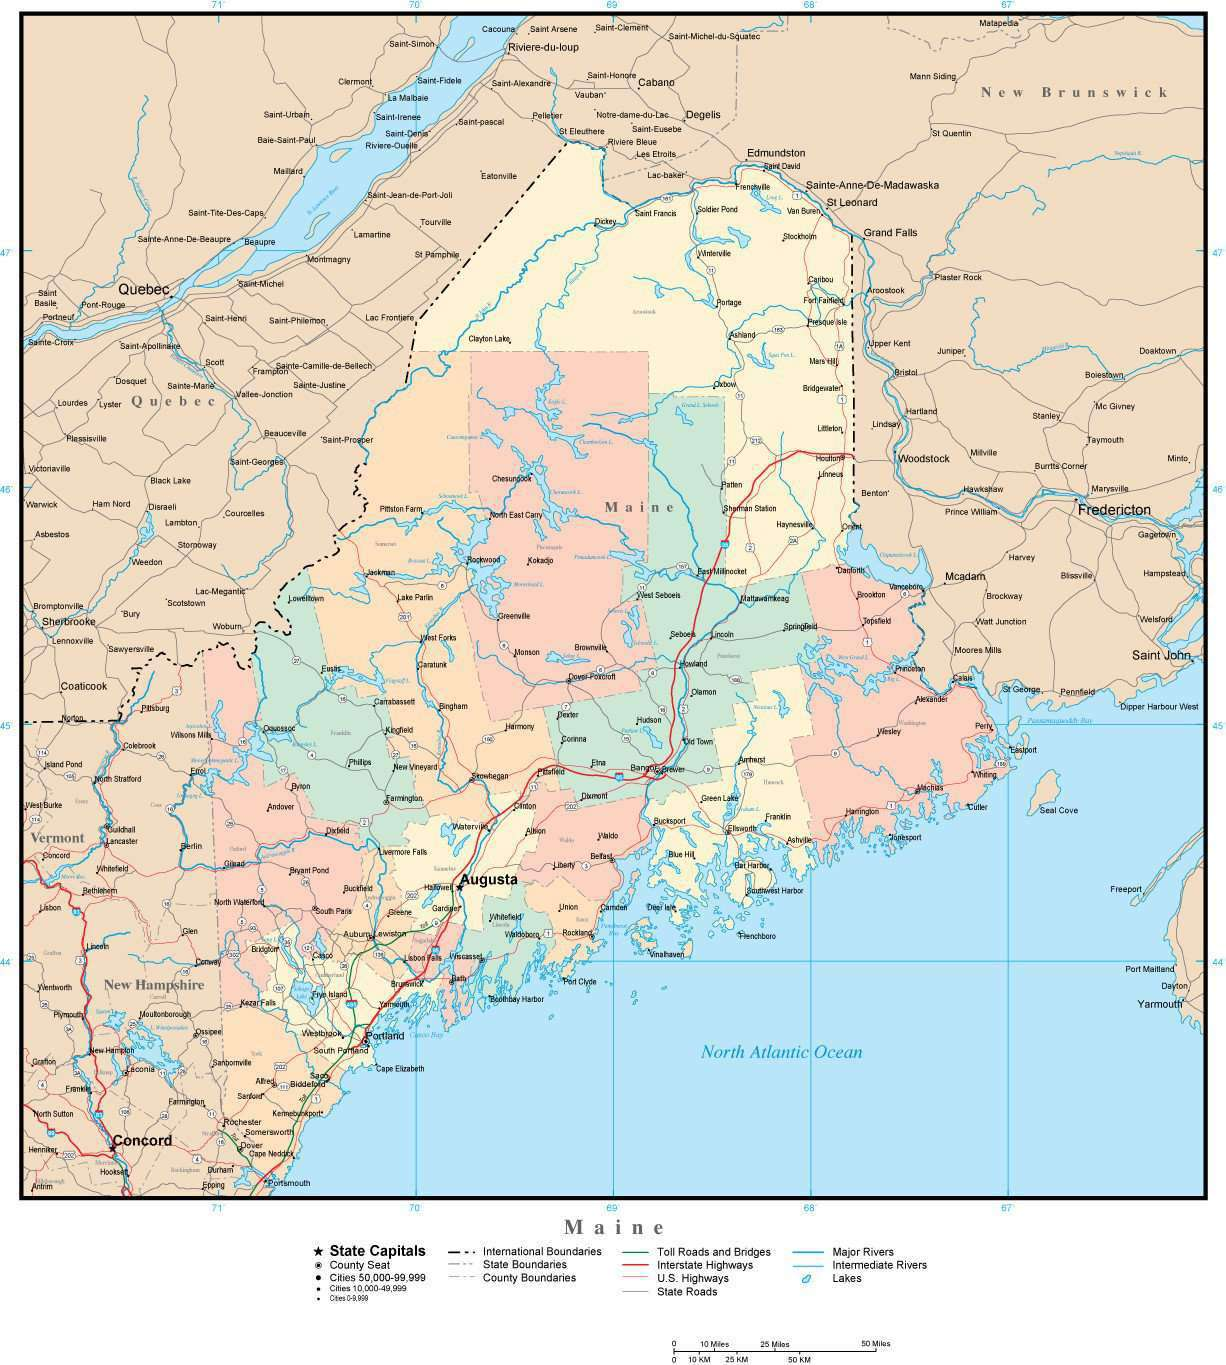 Maine Map with Counties, Cities, County Seats, Major Roads, Rivers and Lakes